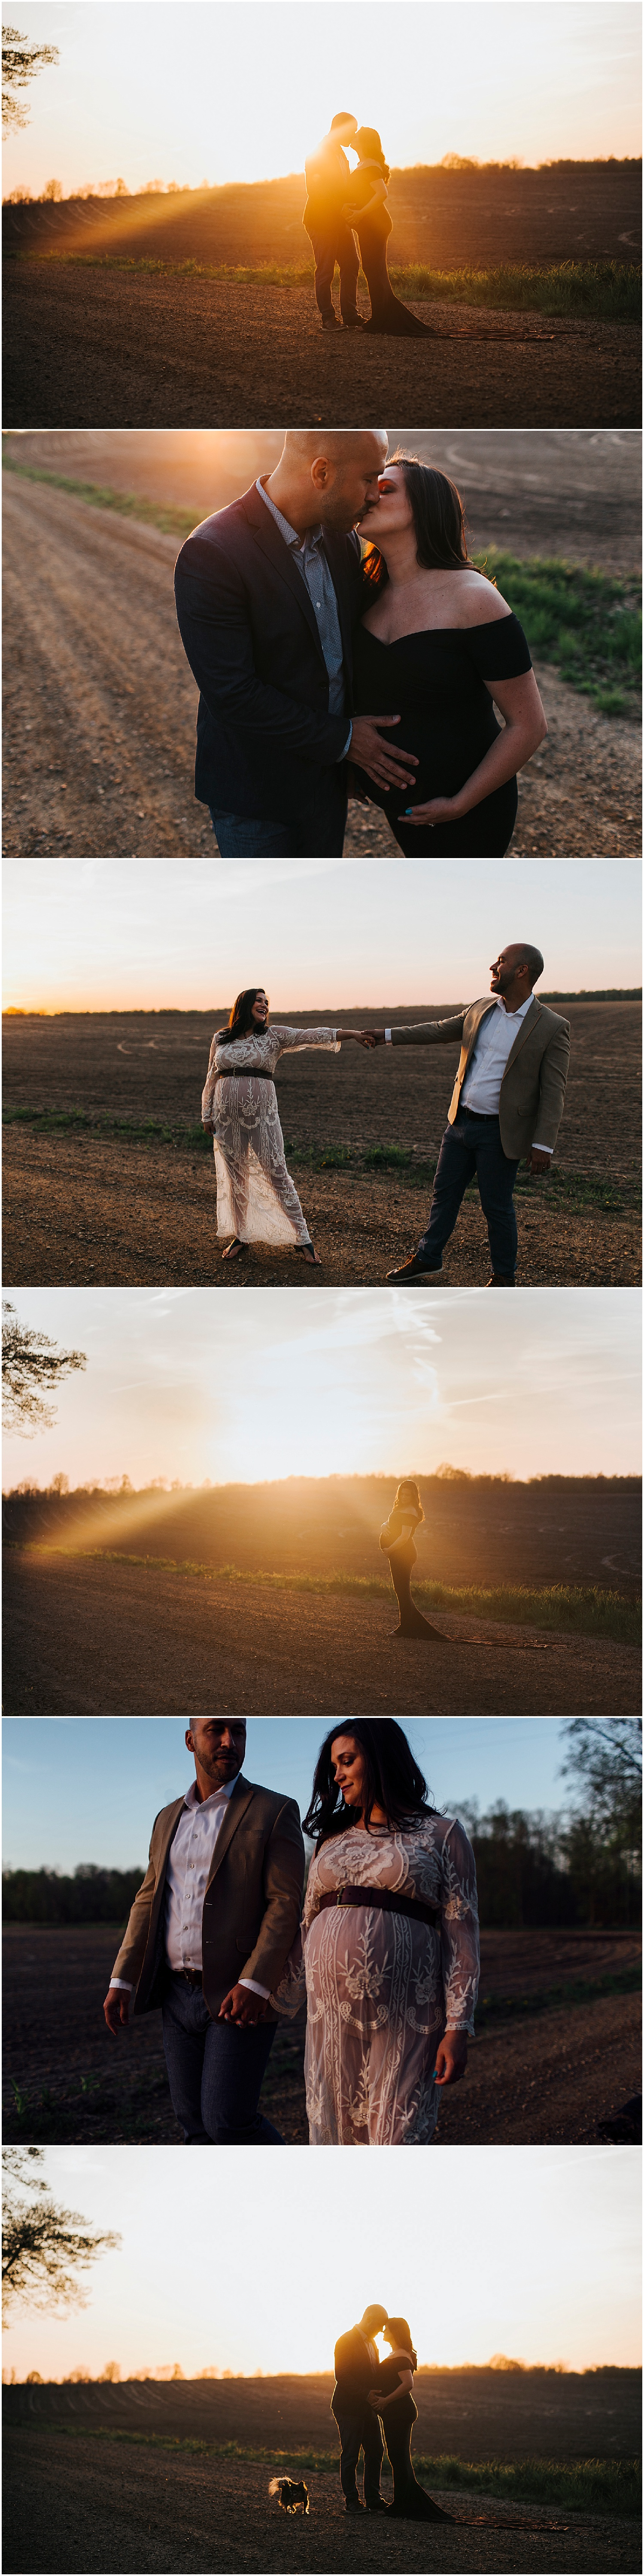 husband, pregnant wife & dog playfully dancing in field and on dirt road